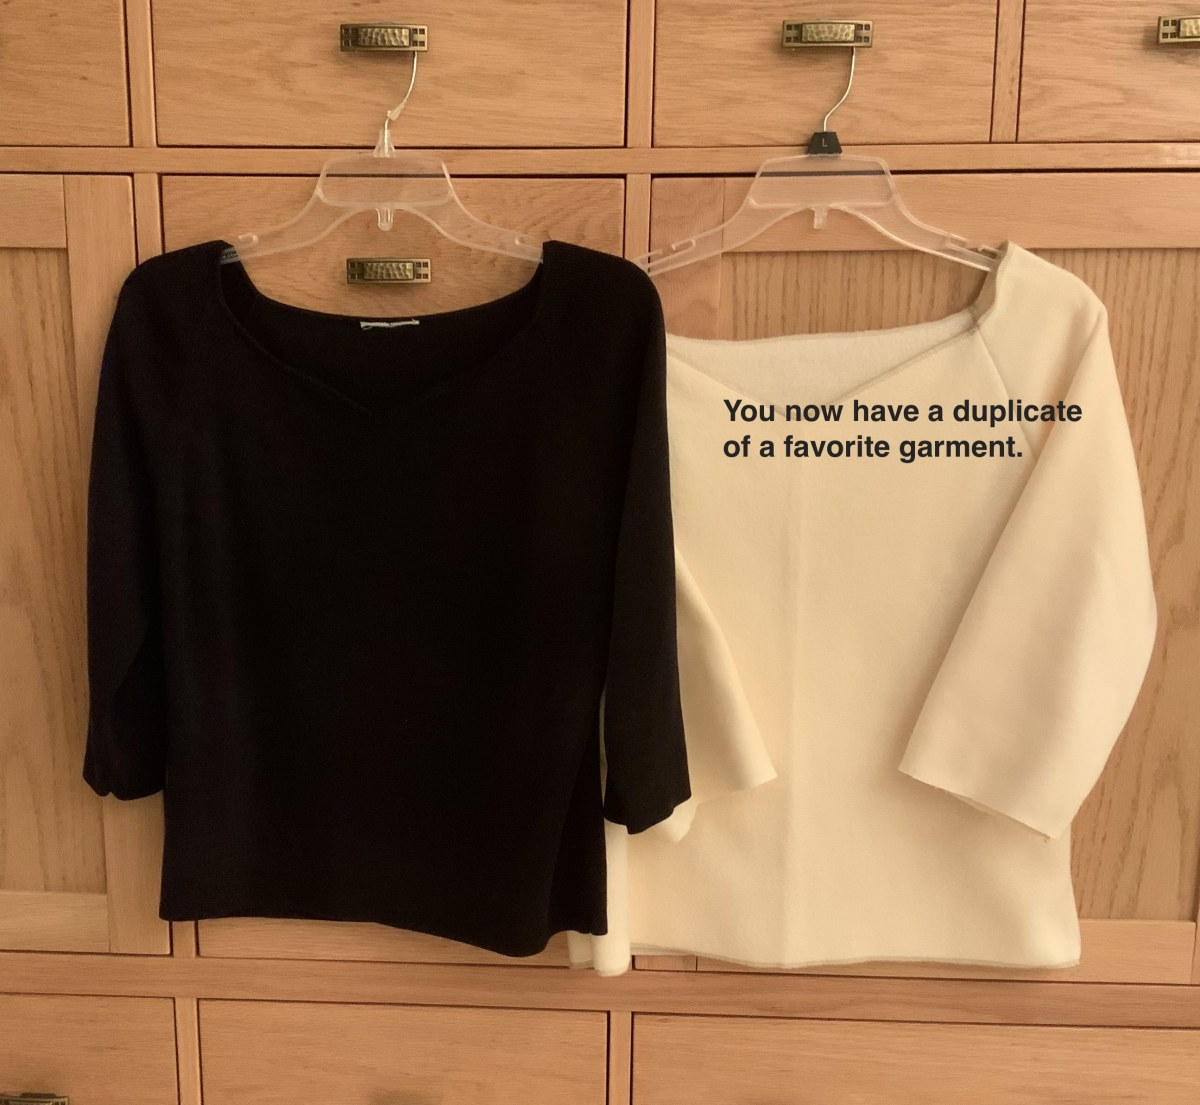 How to Duplicate or Copy a Favorite Garment